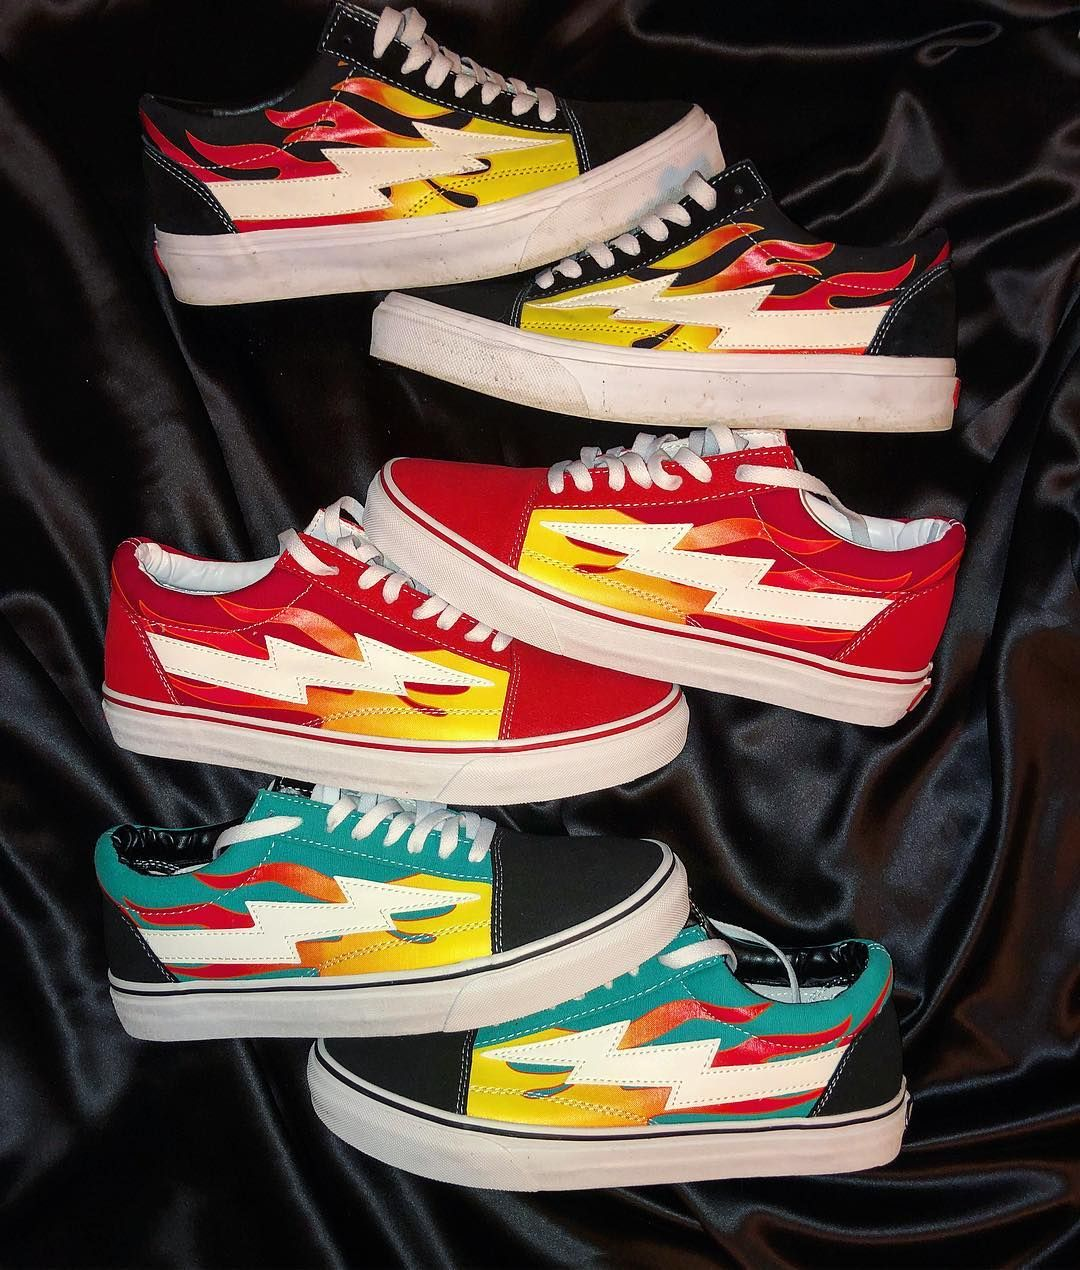 1dbe08af Revenge X Storm Flames | i fucks with this in 2019 | Vans shoes ...